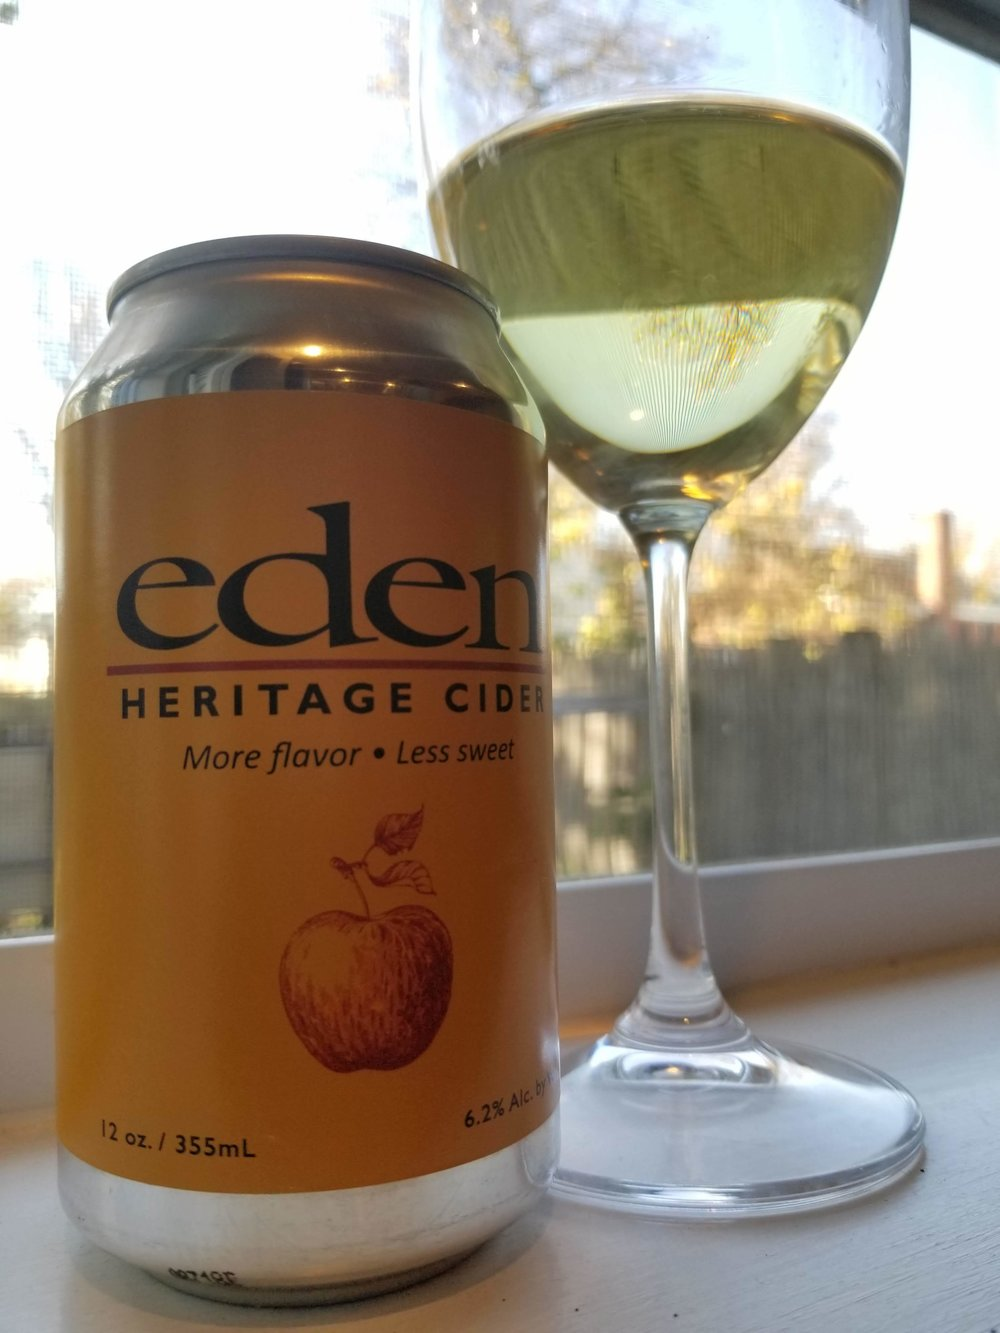 Heritage Cider (can) - This Heritage cider is the perfect balance of fruit & acidity. Its fermented dry with small % of Eden's Ice Cider. According to my palate, this cider is perfection. I would be happy to drink this lounging inside or while watching sports outdoors.